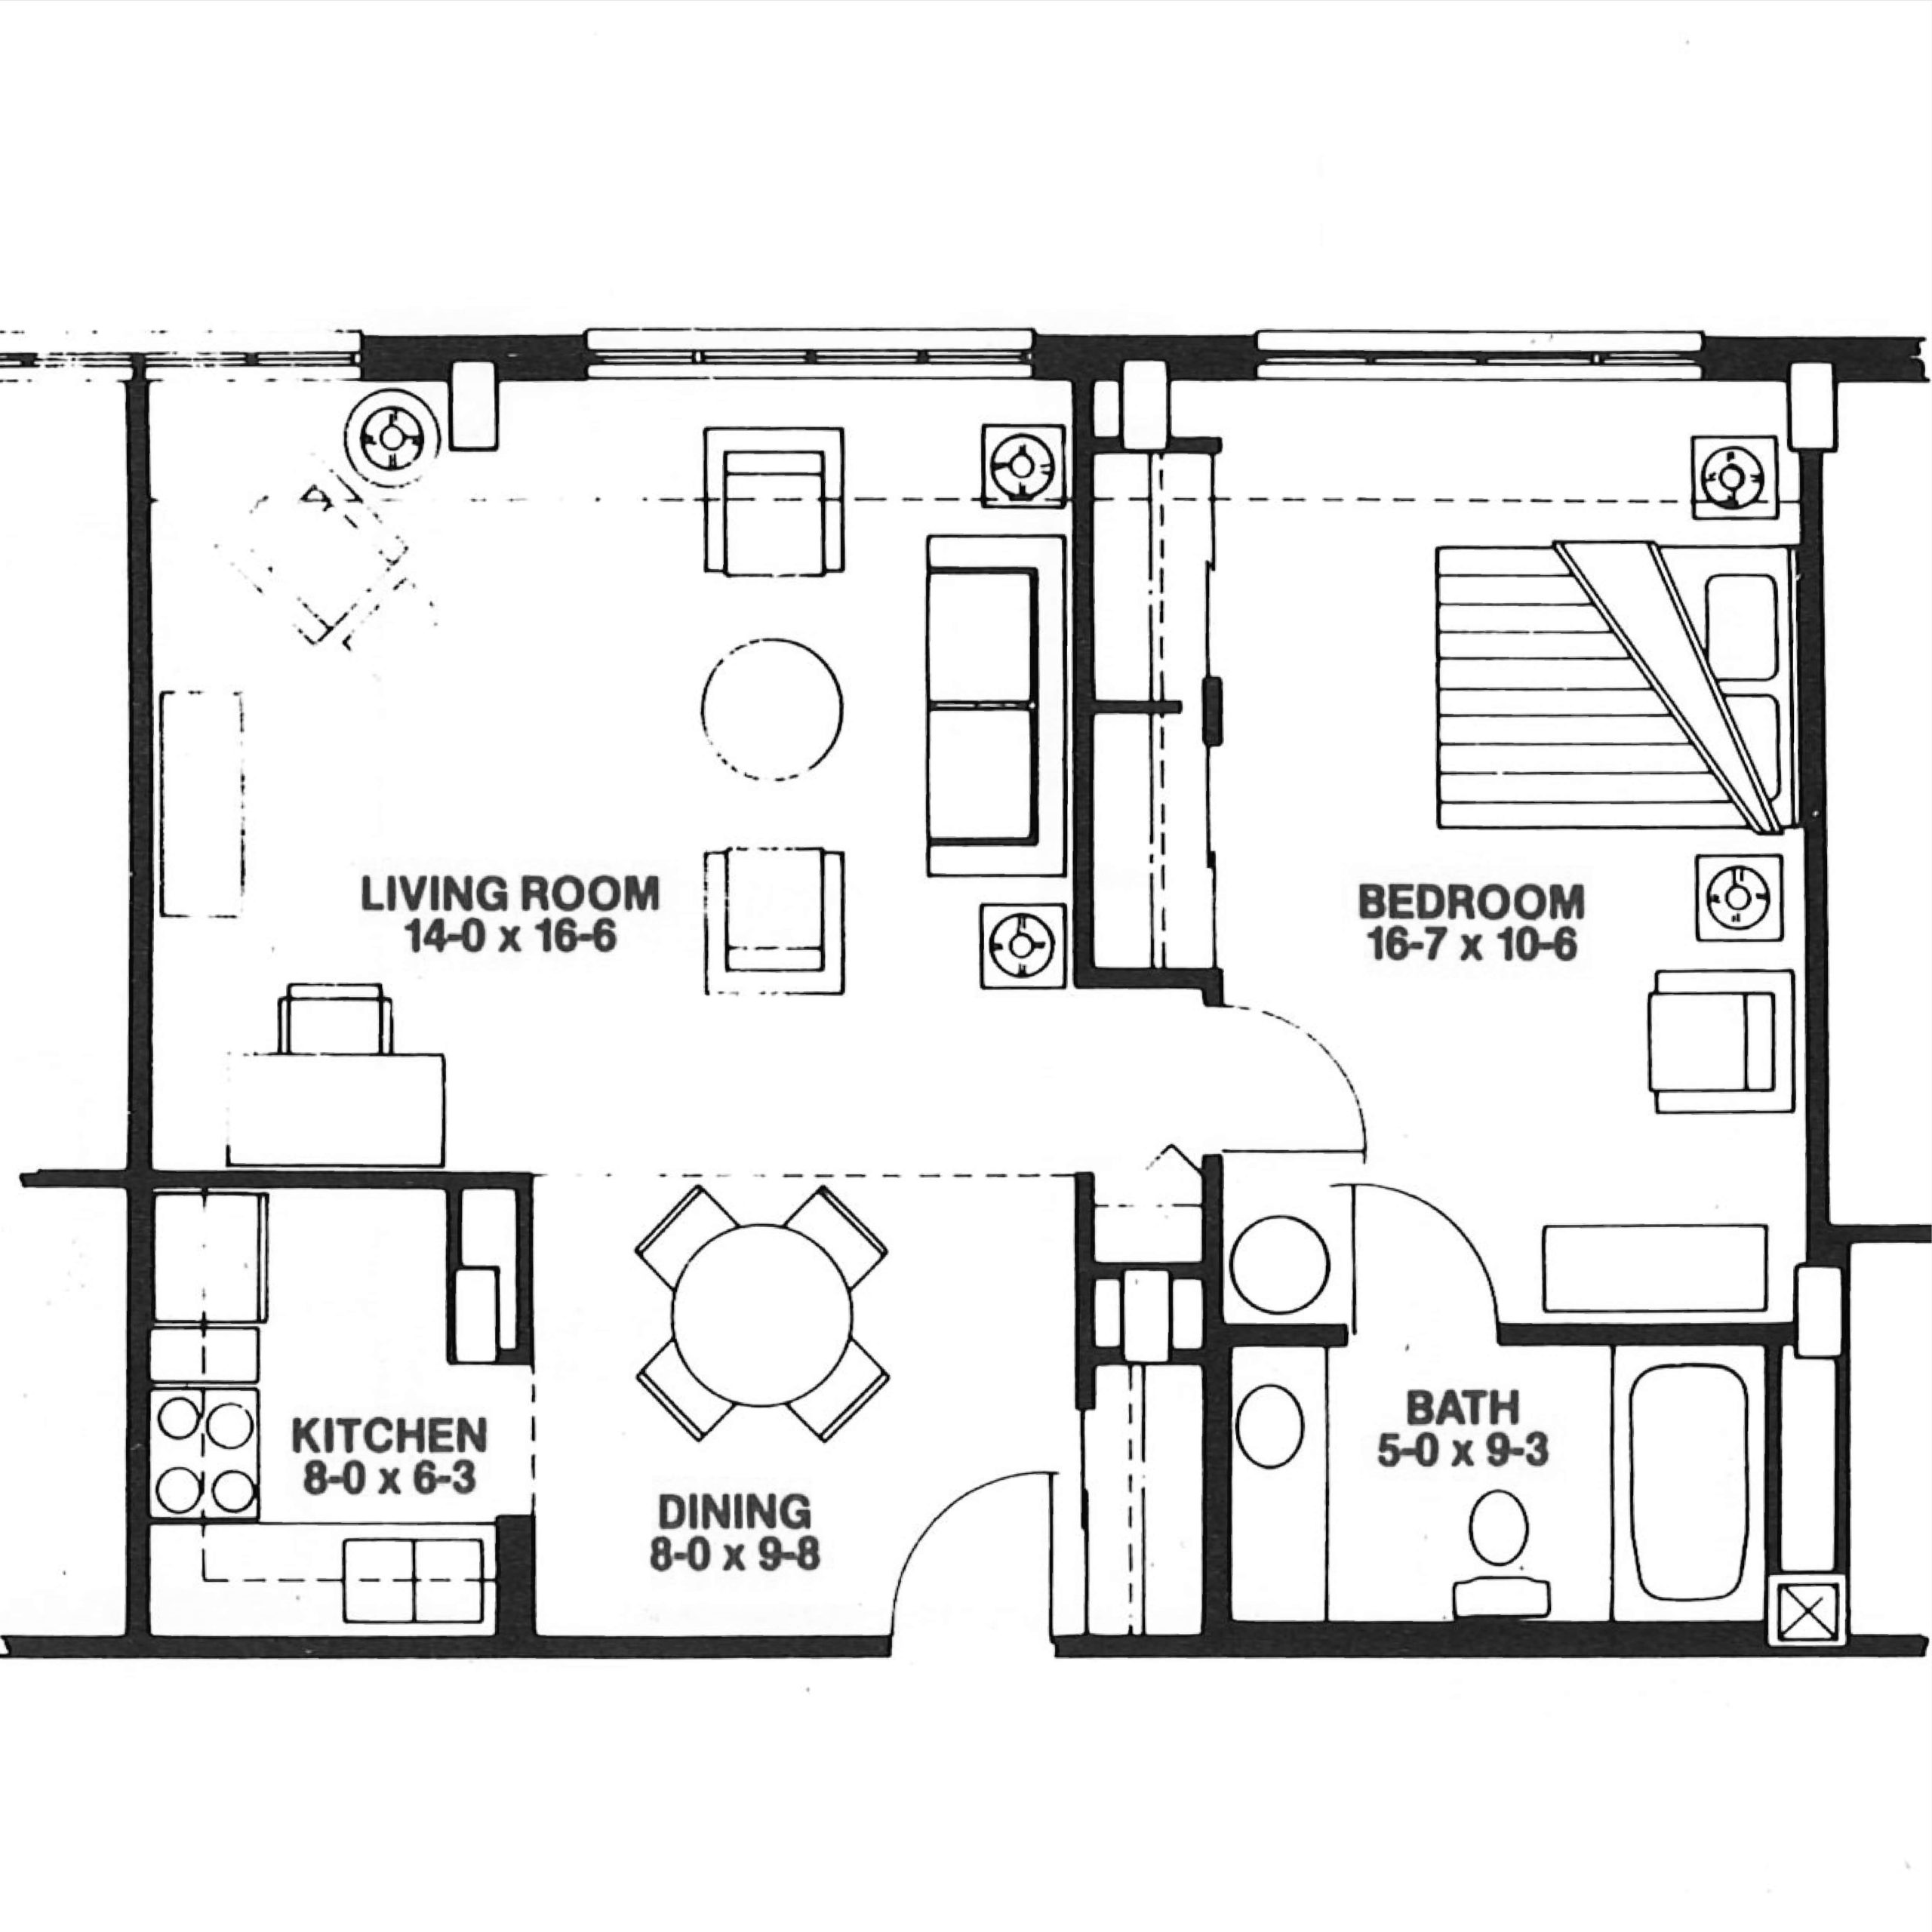 The Dogwood floor plan blueprint